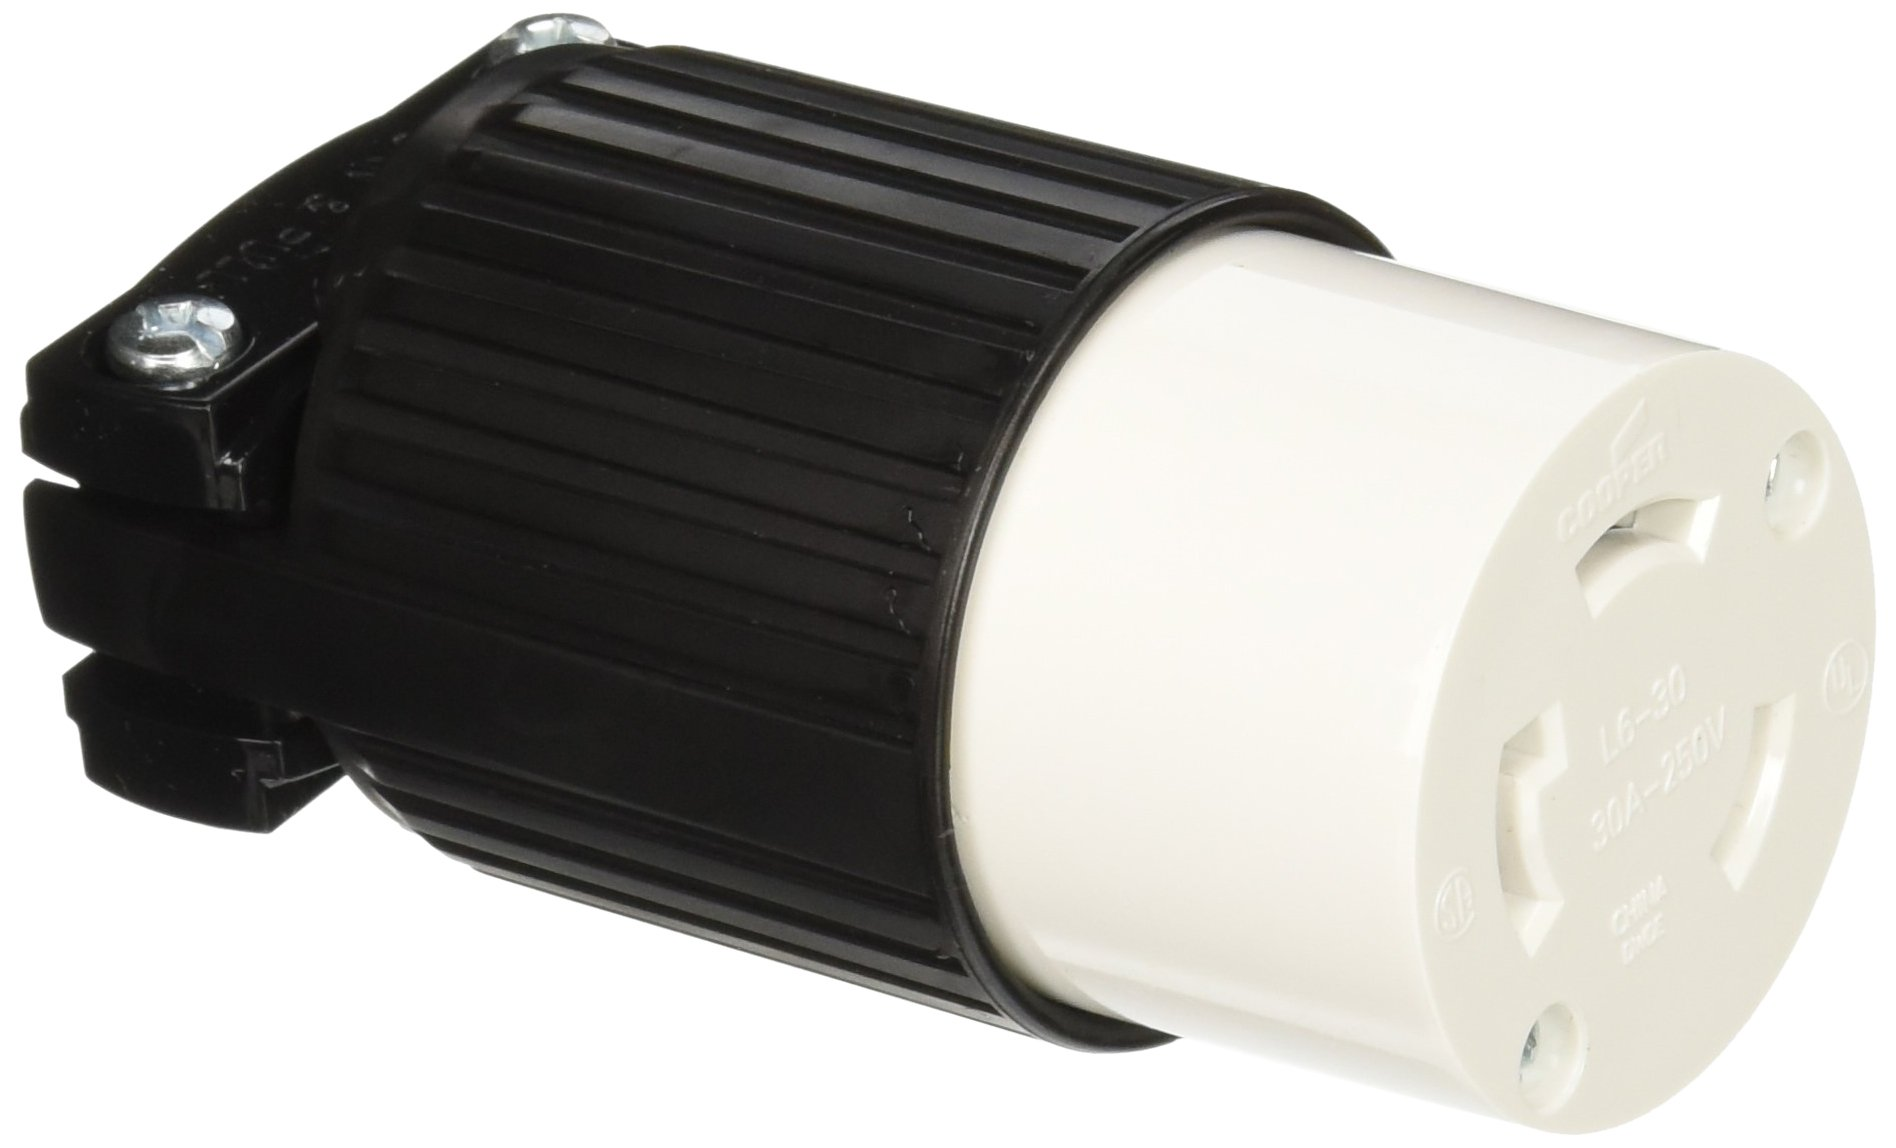 Eaton L630C 30-Amp 250-Volt Hart-Lock Industrial Grade Connector with Safety Grip Black and White